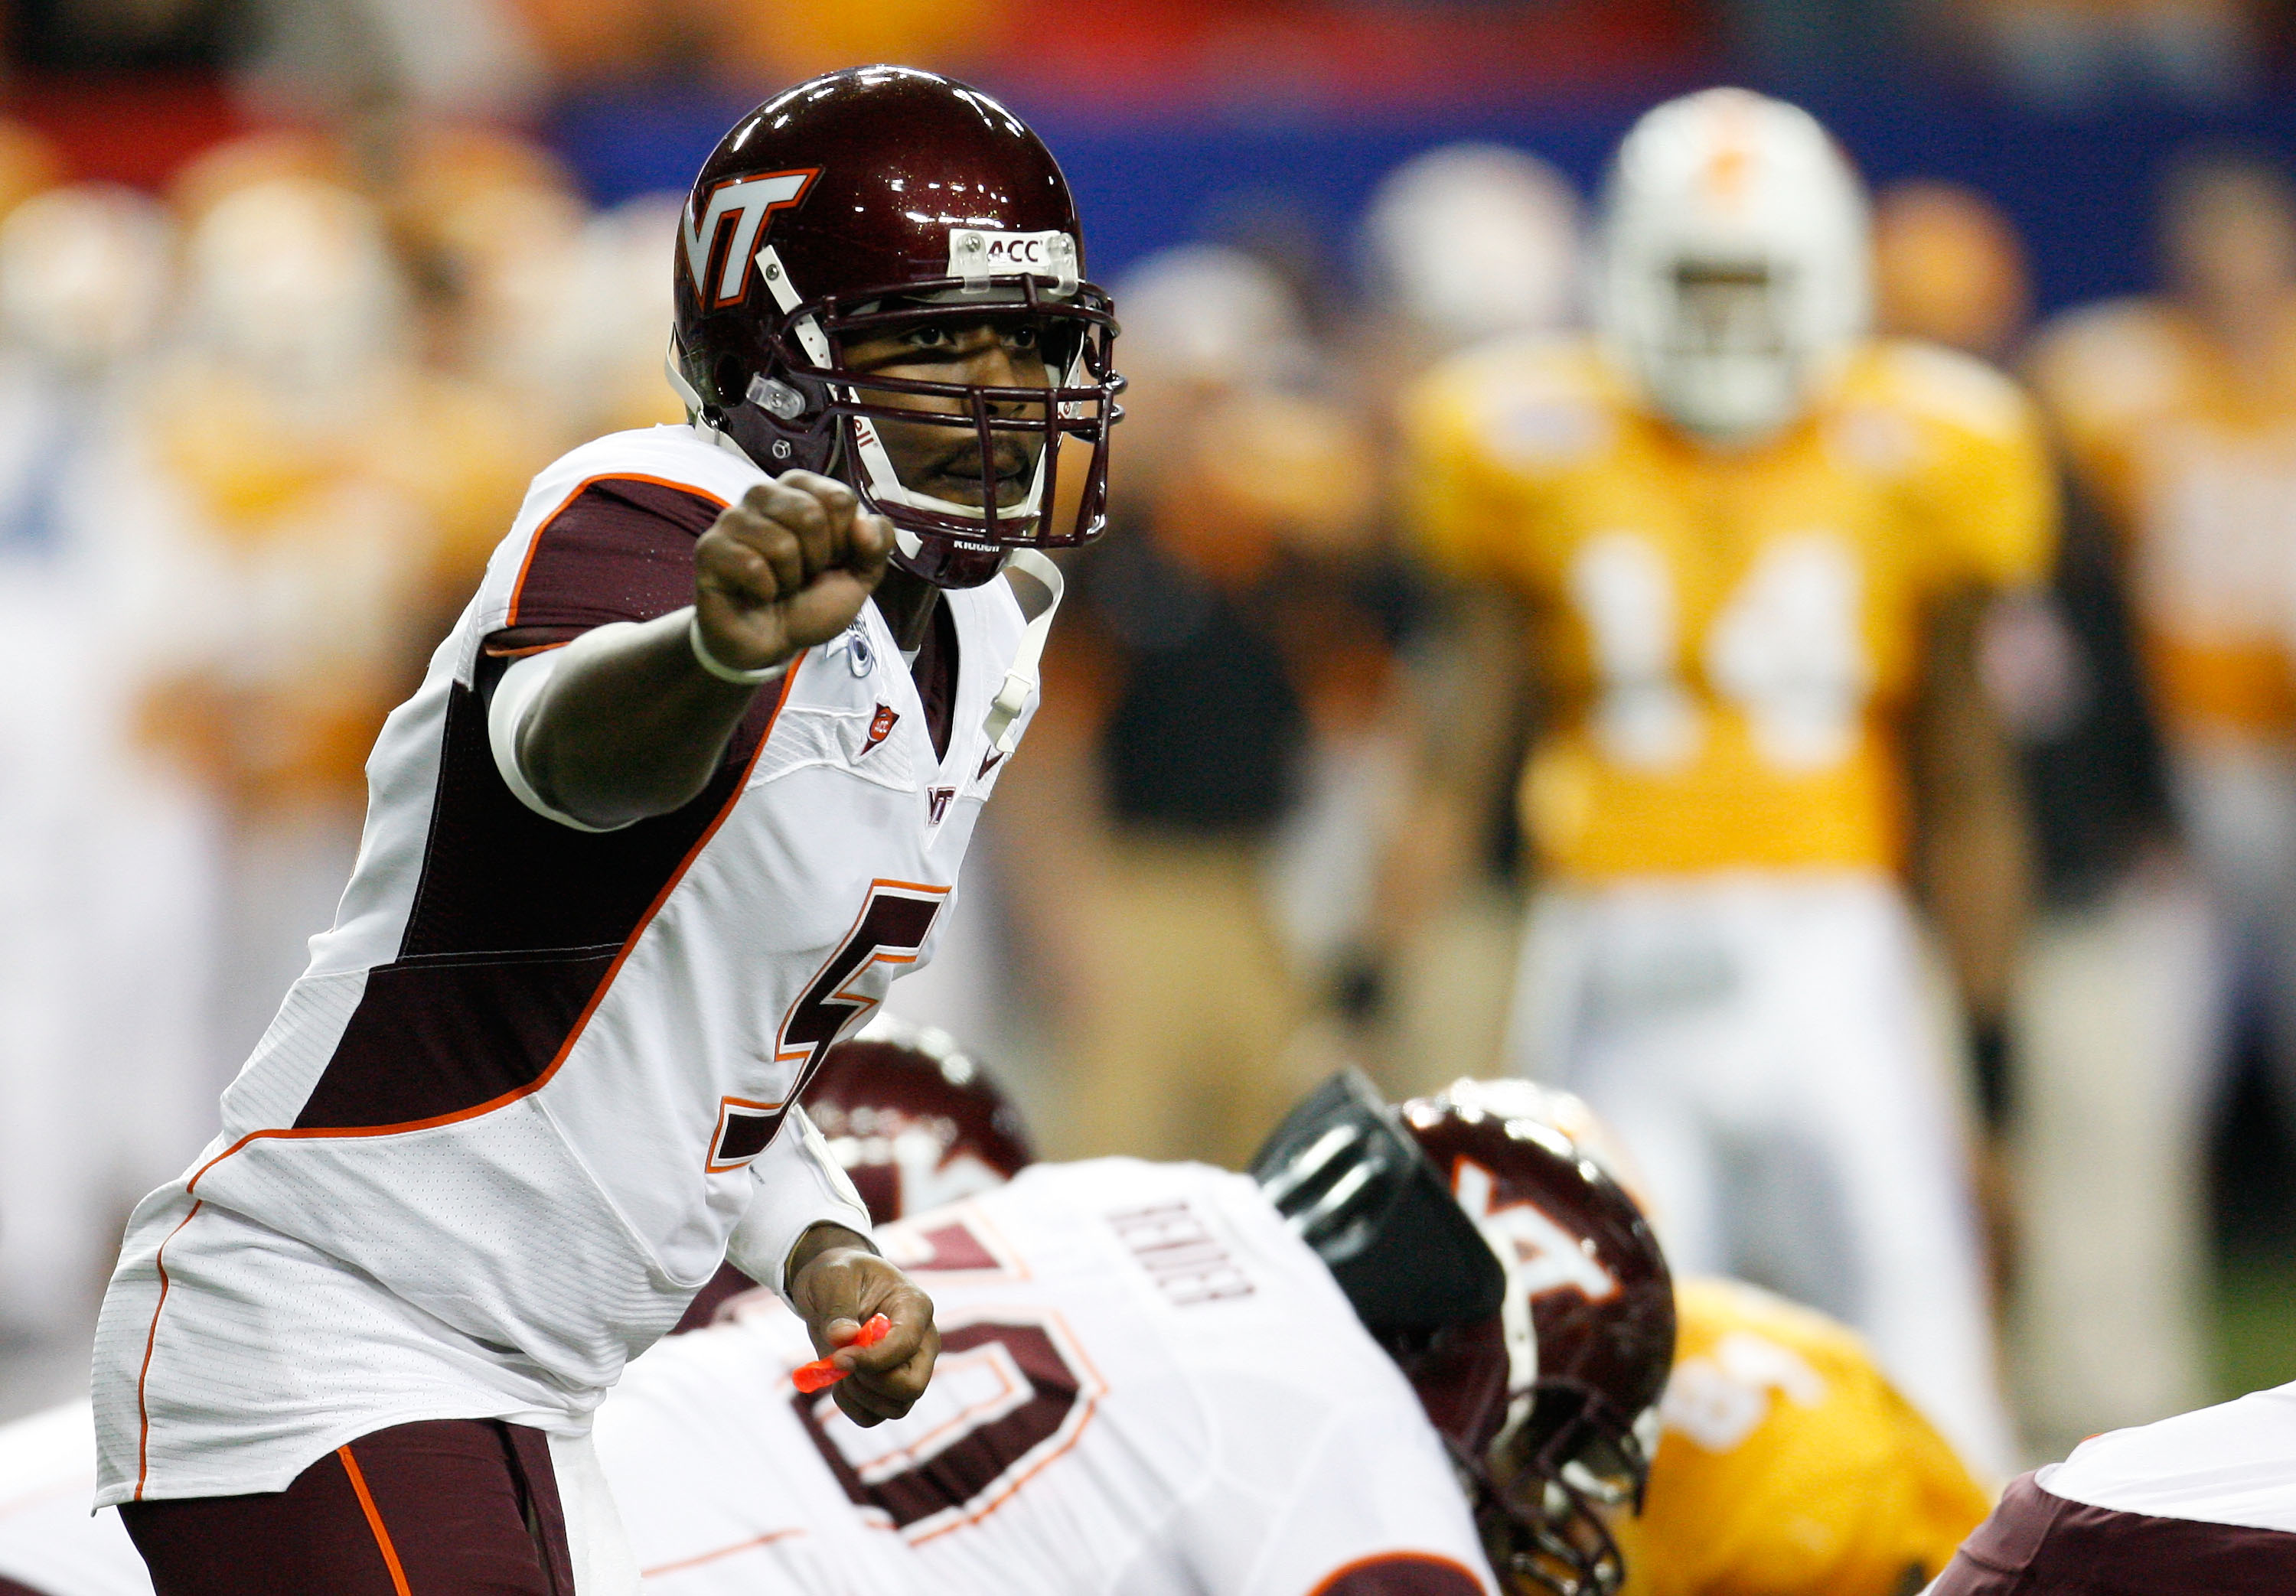 ATLANTA - DECEMBER 31:  Quarterback Tyrod Taylor #5 of the Virginia Tech Hokies signals to the offense during the Chick-Fil-A Bowl against the Tennessee Volunteers at the Georgia Dome on December 31, 2009 in Atlanta, Georgia.  The Hokies beat the Voluntee